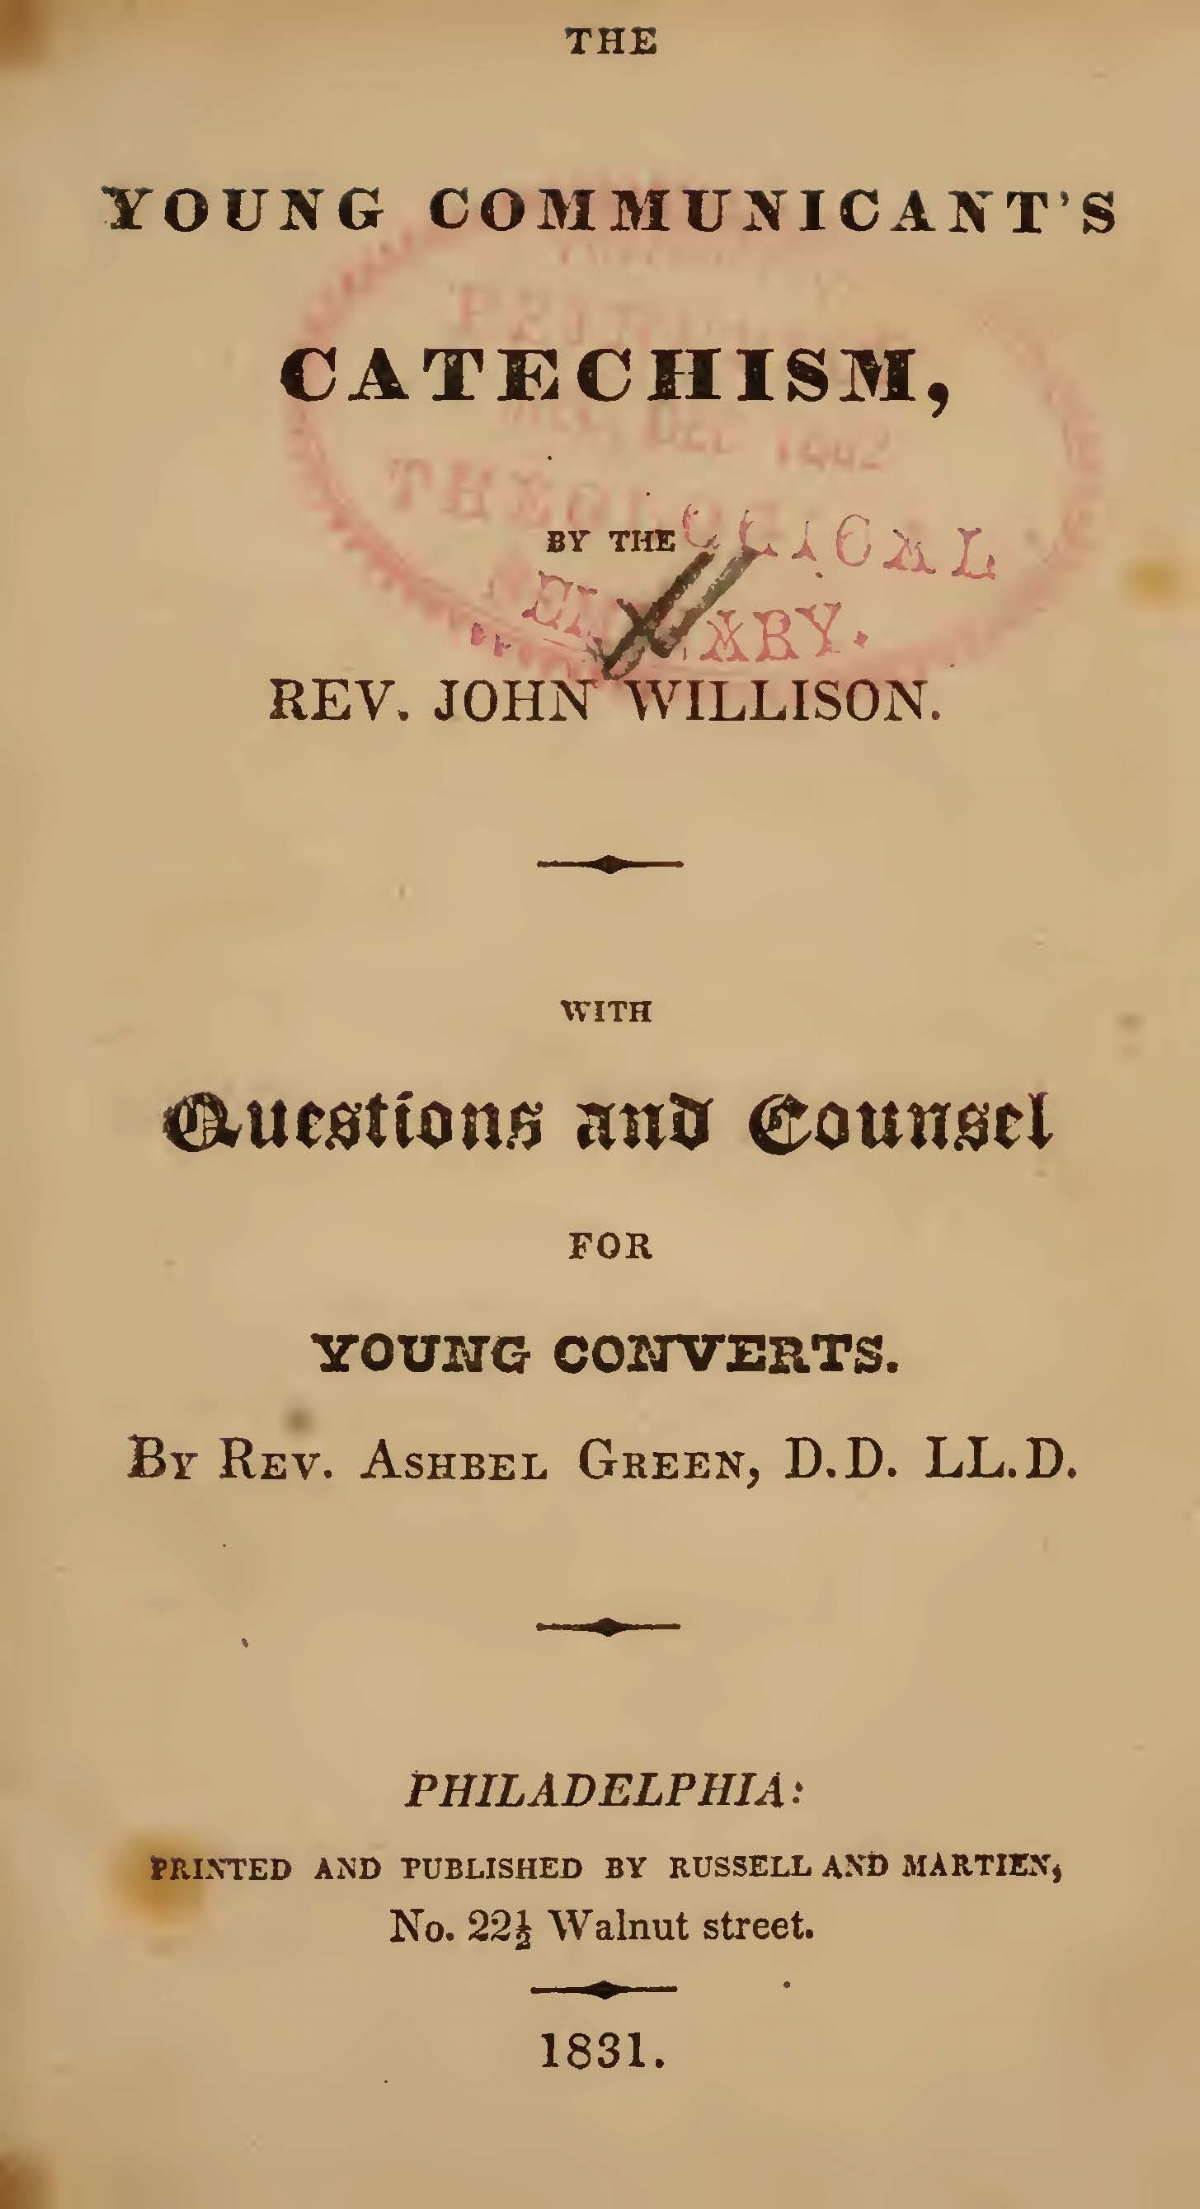 Green, Ashbel, Questions and Counsel for Young Converts Title Page.jpg